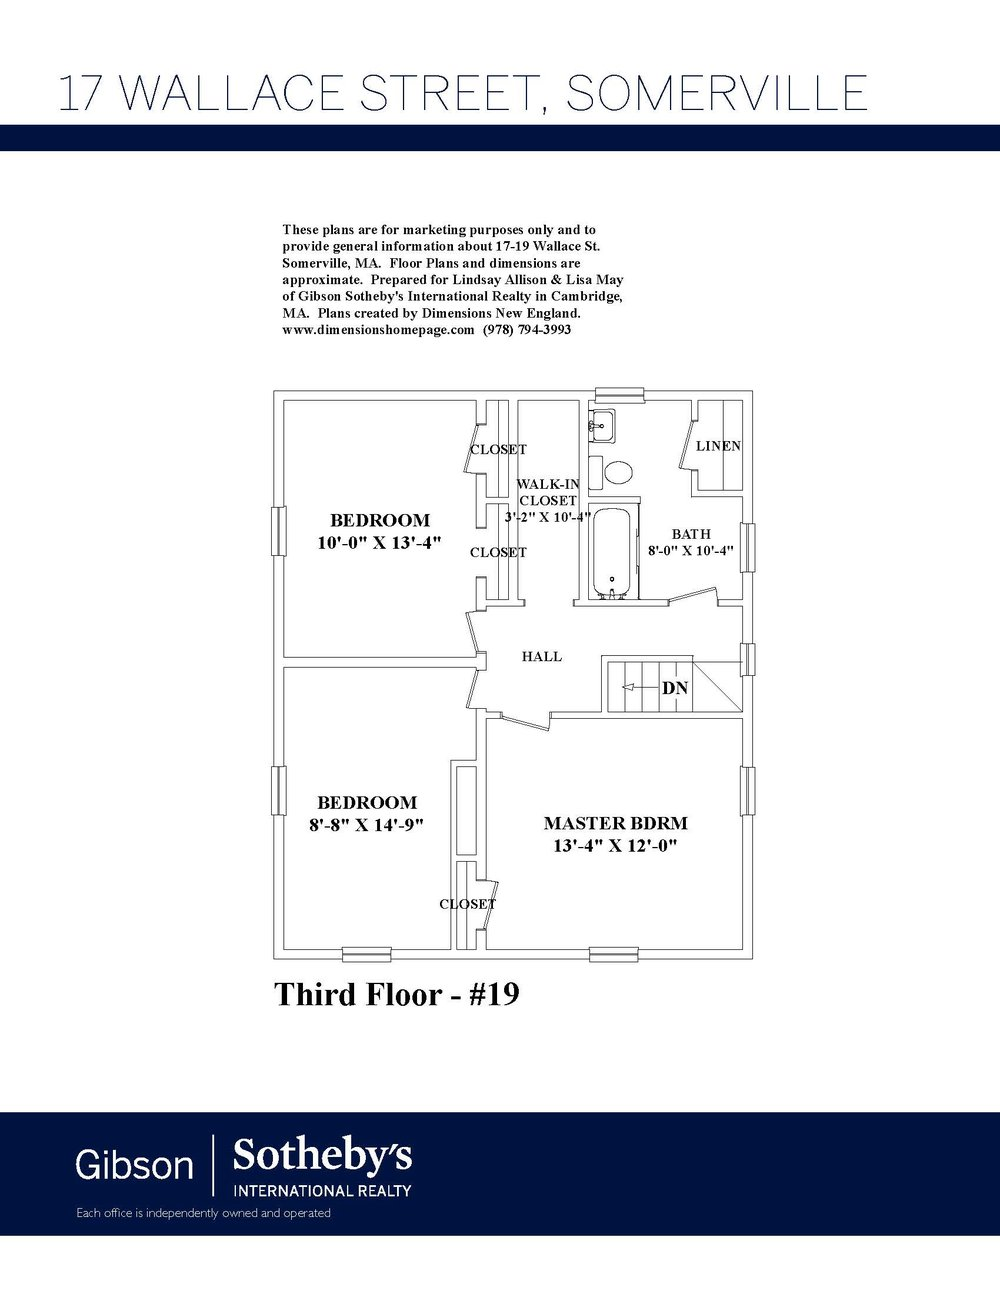 17 Wallace Street Floor Plans_Page_3.jpg